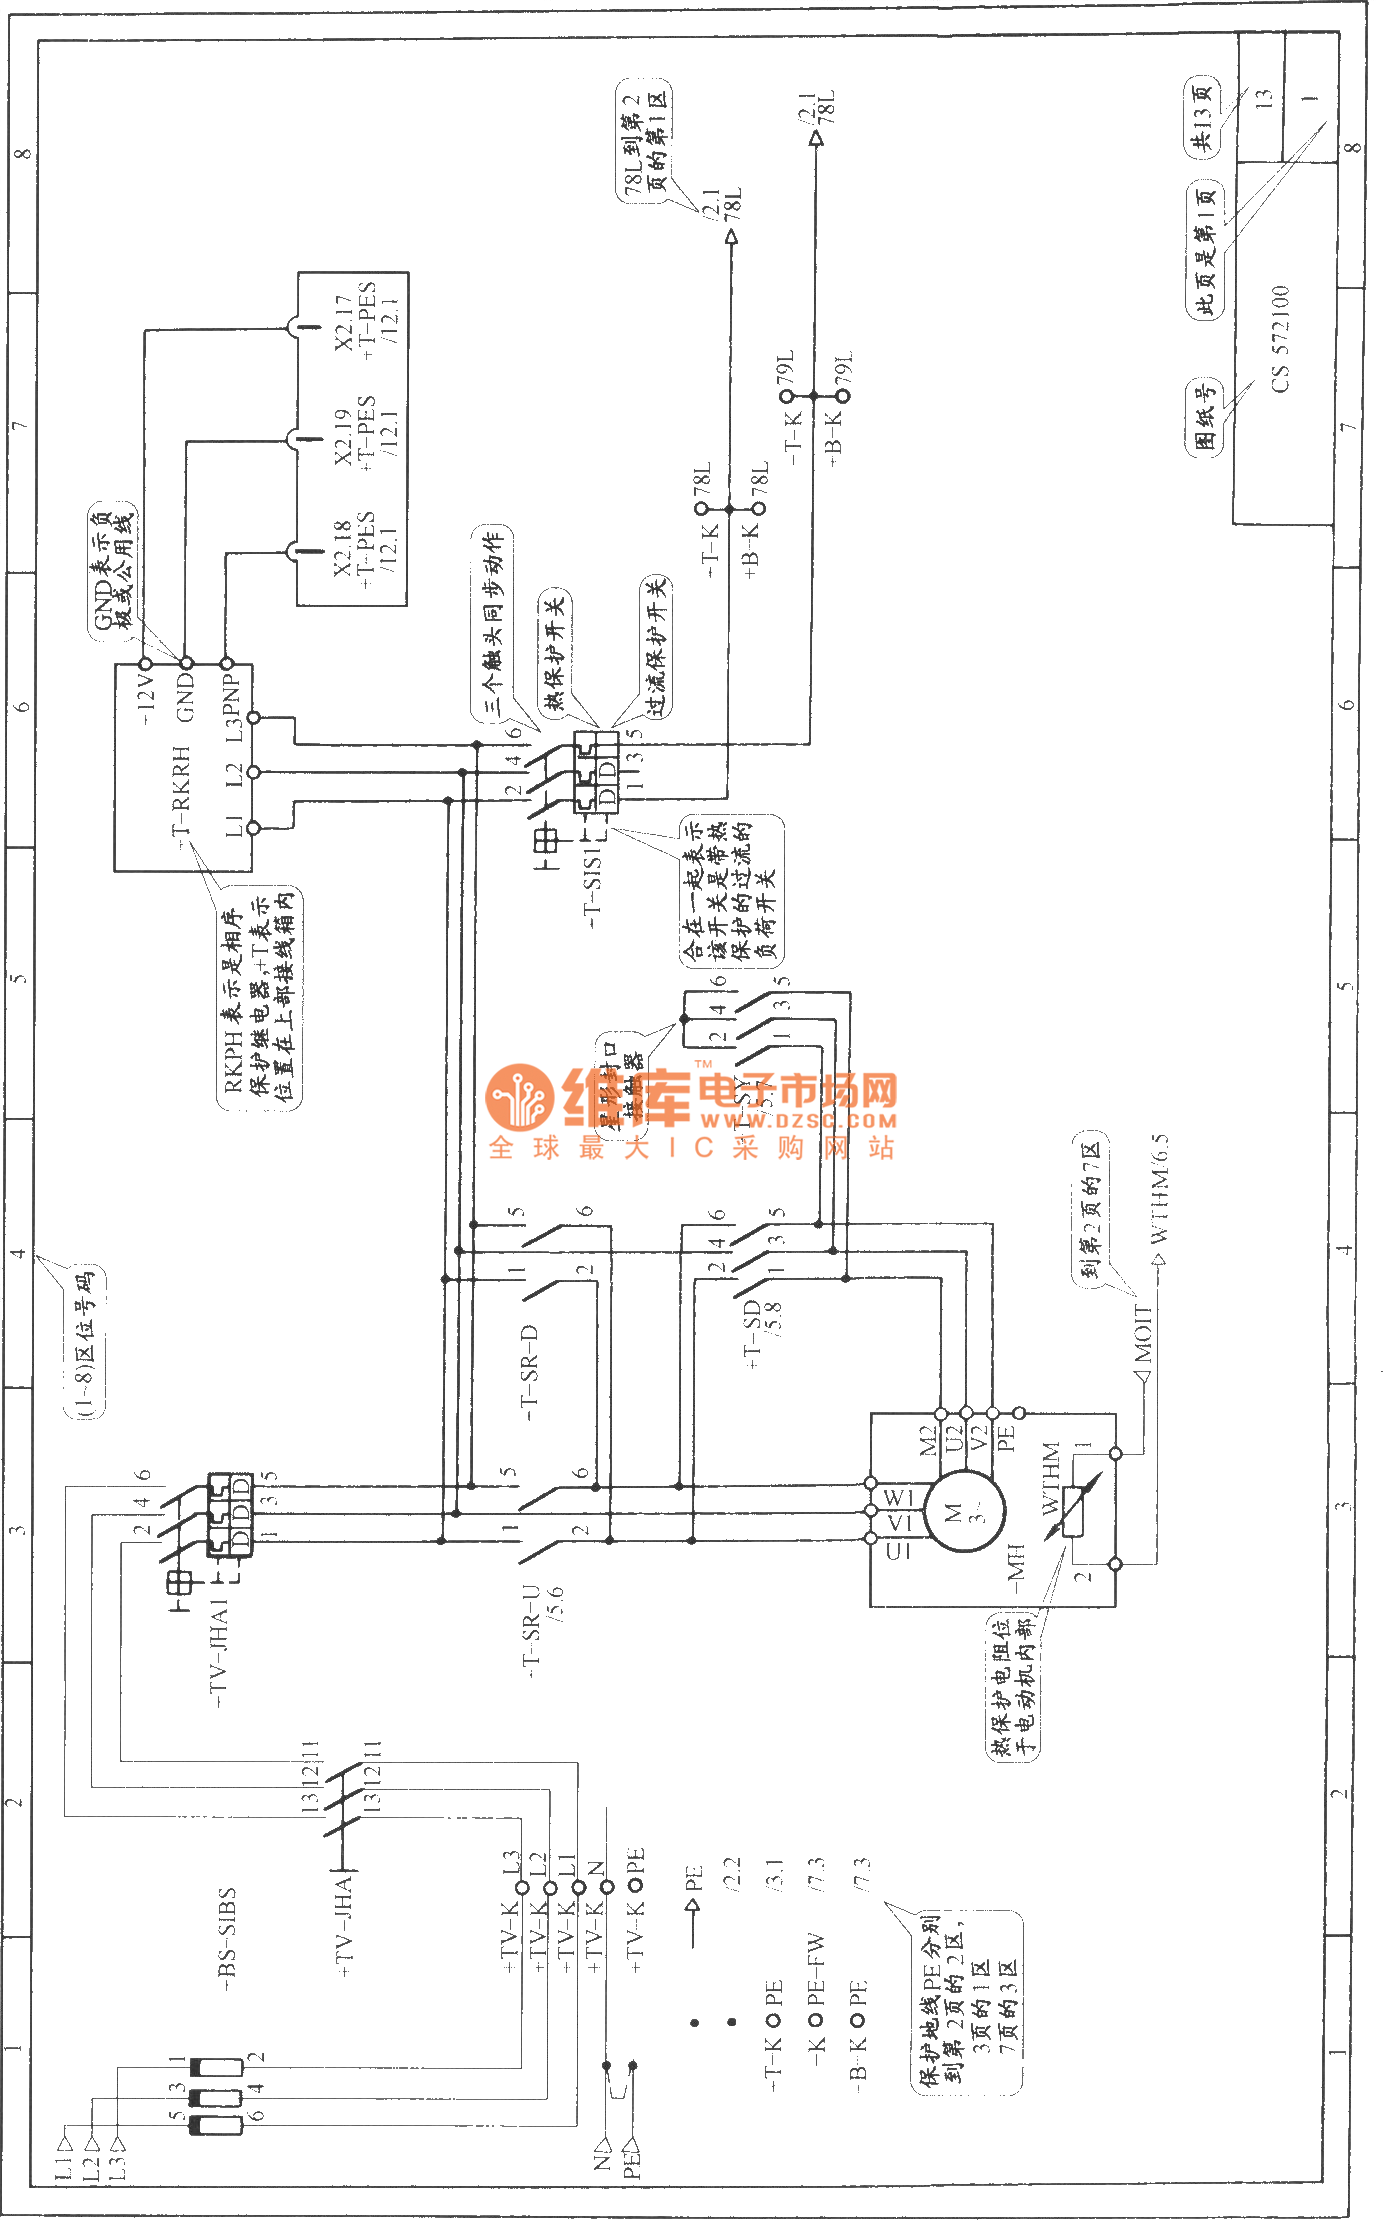 xunda automatic escalator main circuit - electrical equipment circuit - circuit diagram